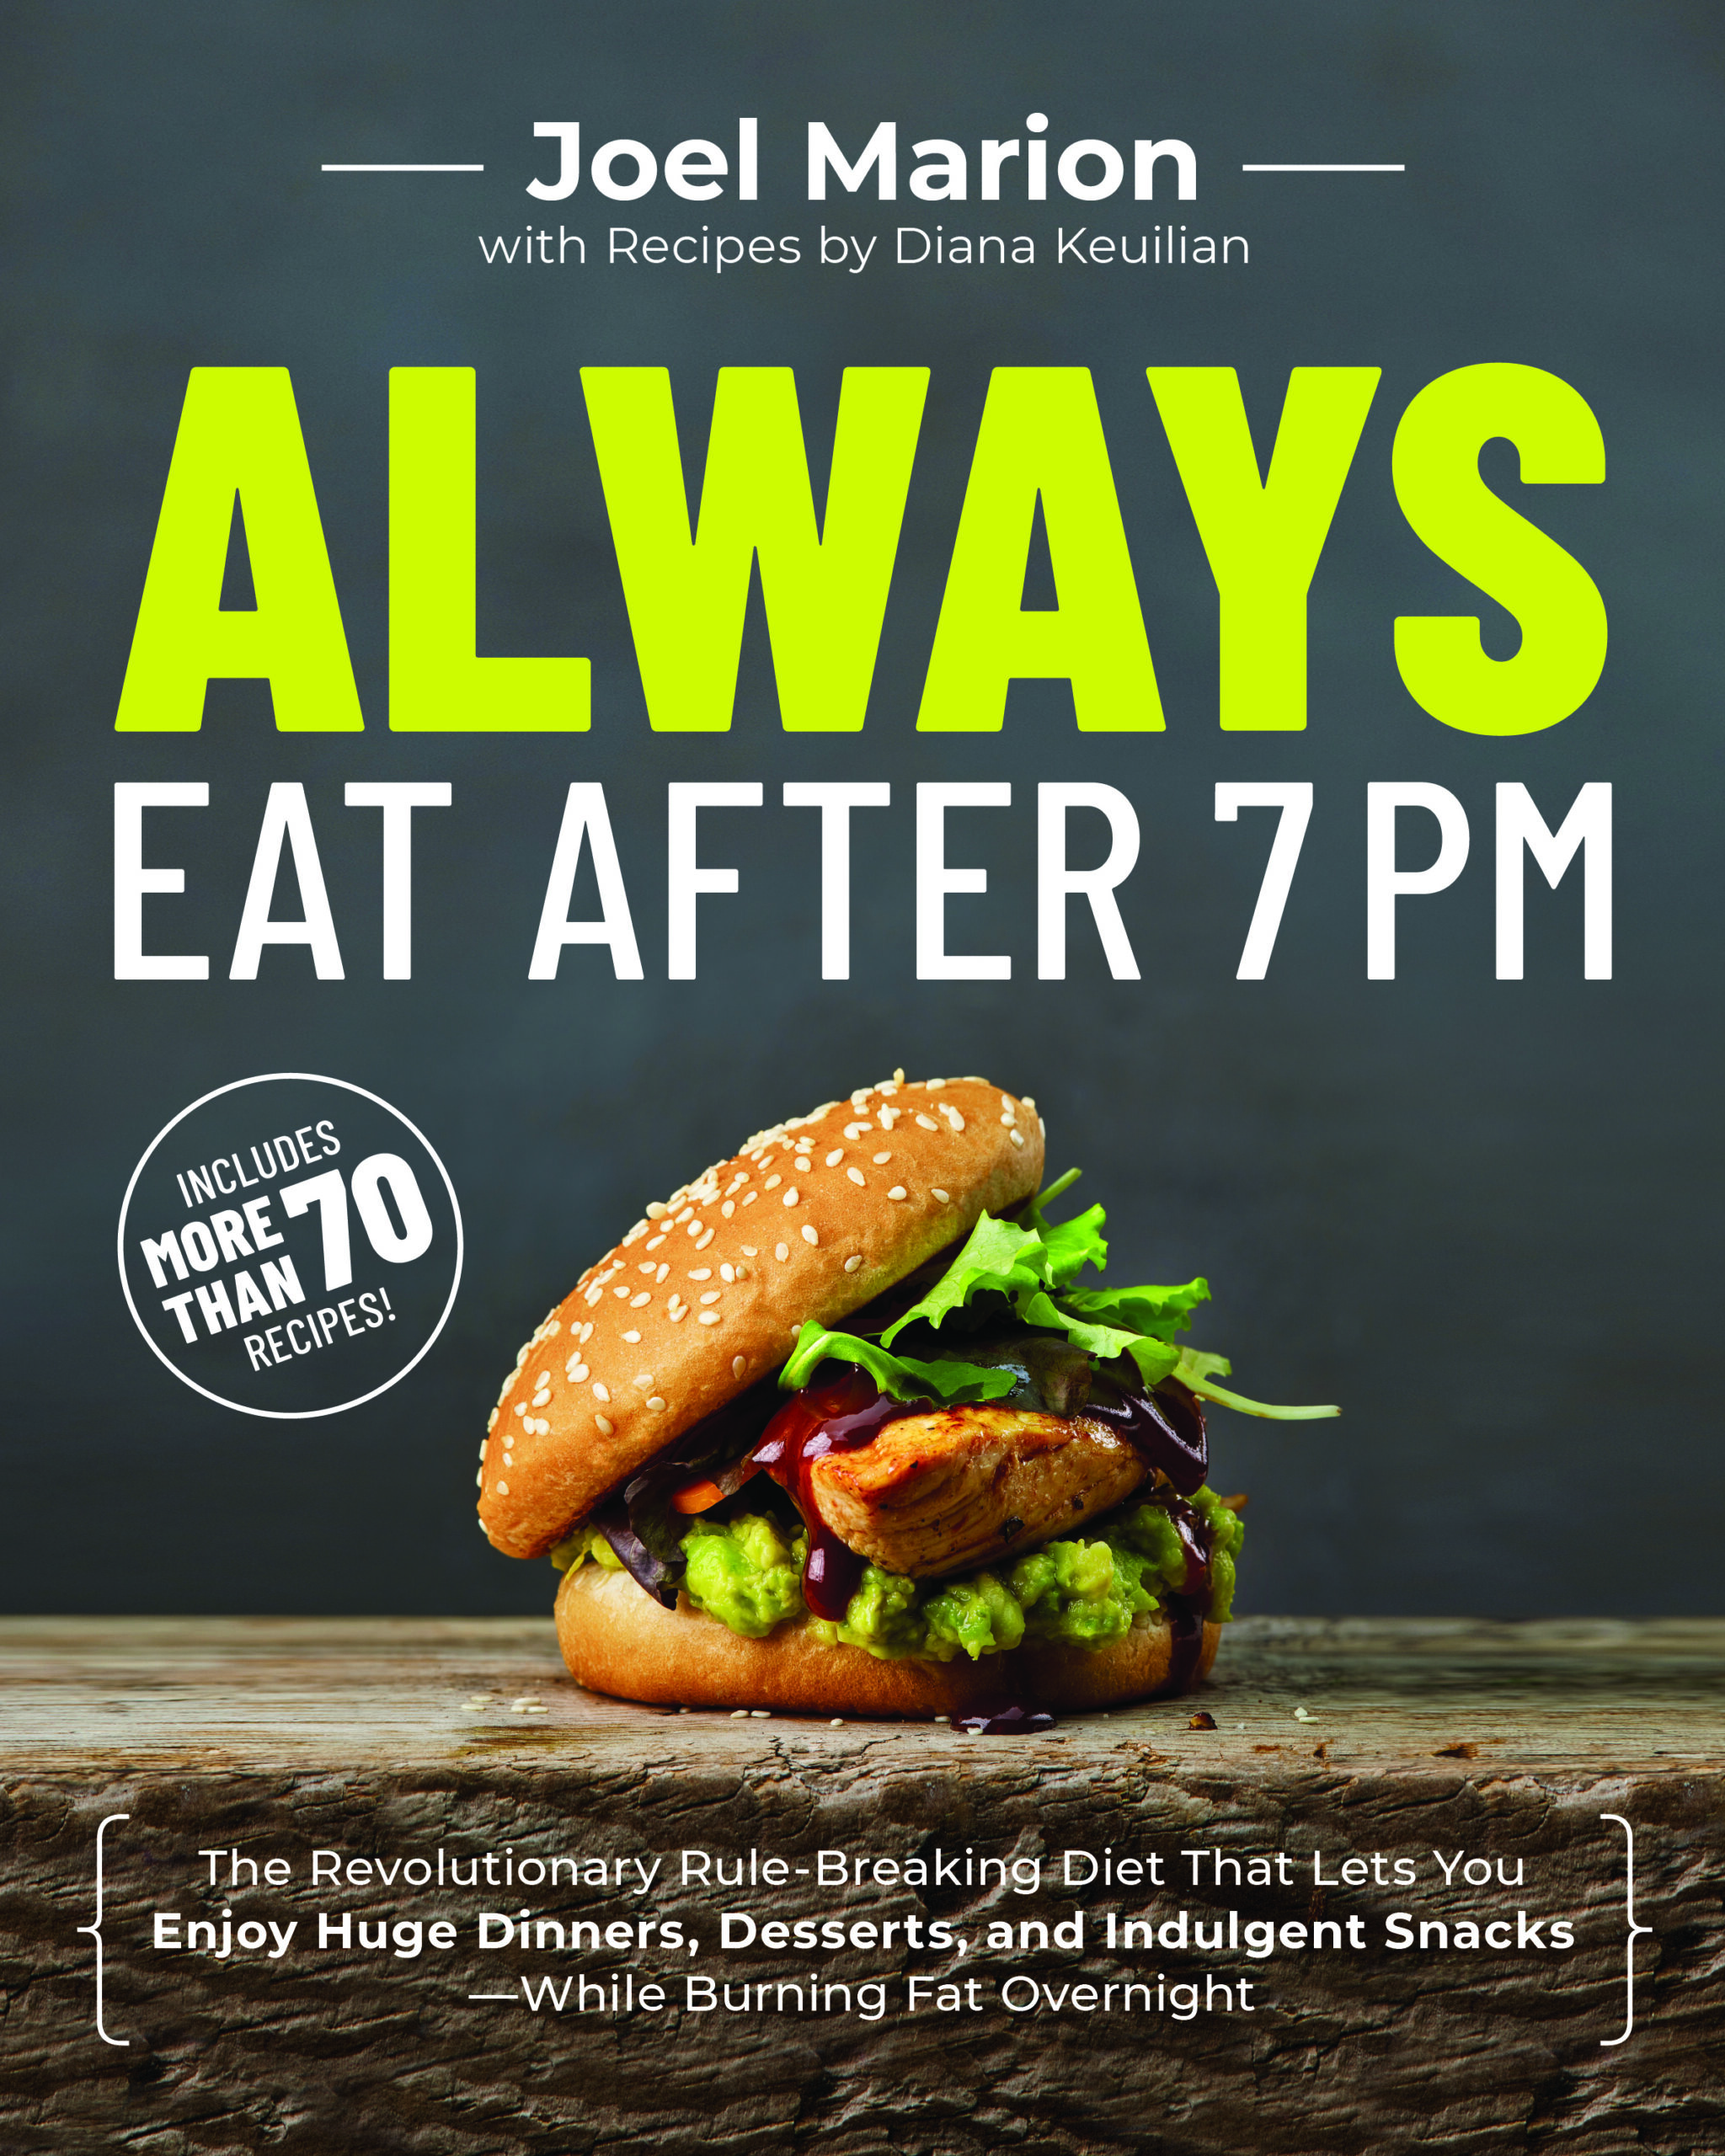 always eat after 7 program, always eat after 7pm, always eat after 7pm book challenge, joel marion, new diet plan, new diets, meal planning, new diets, intermittent fasting